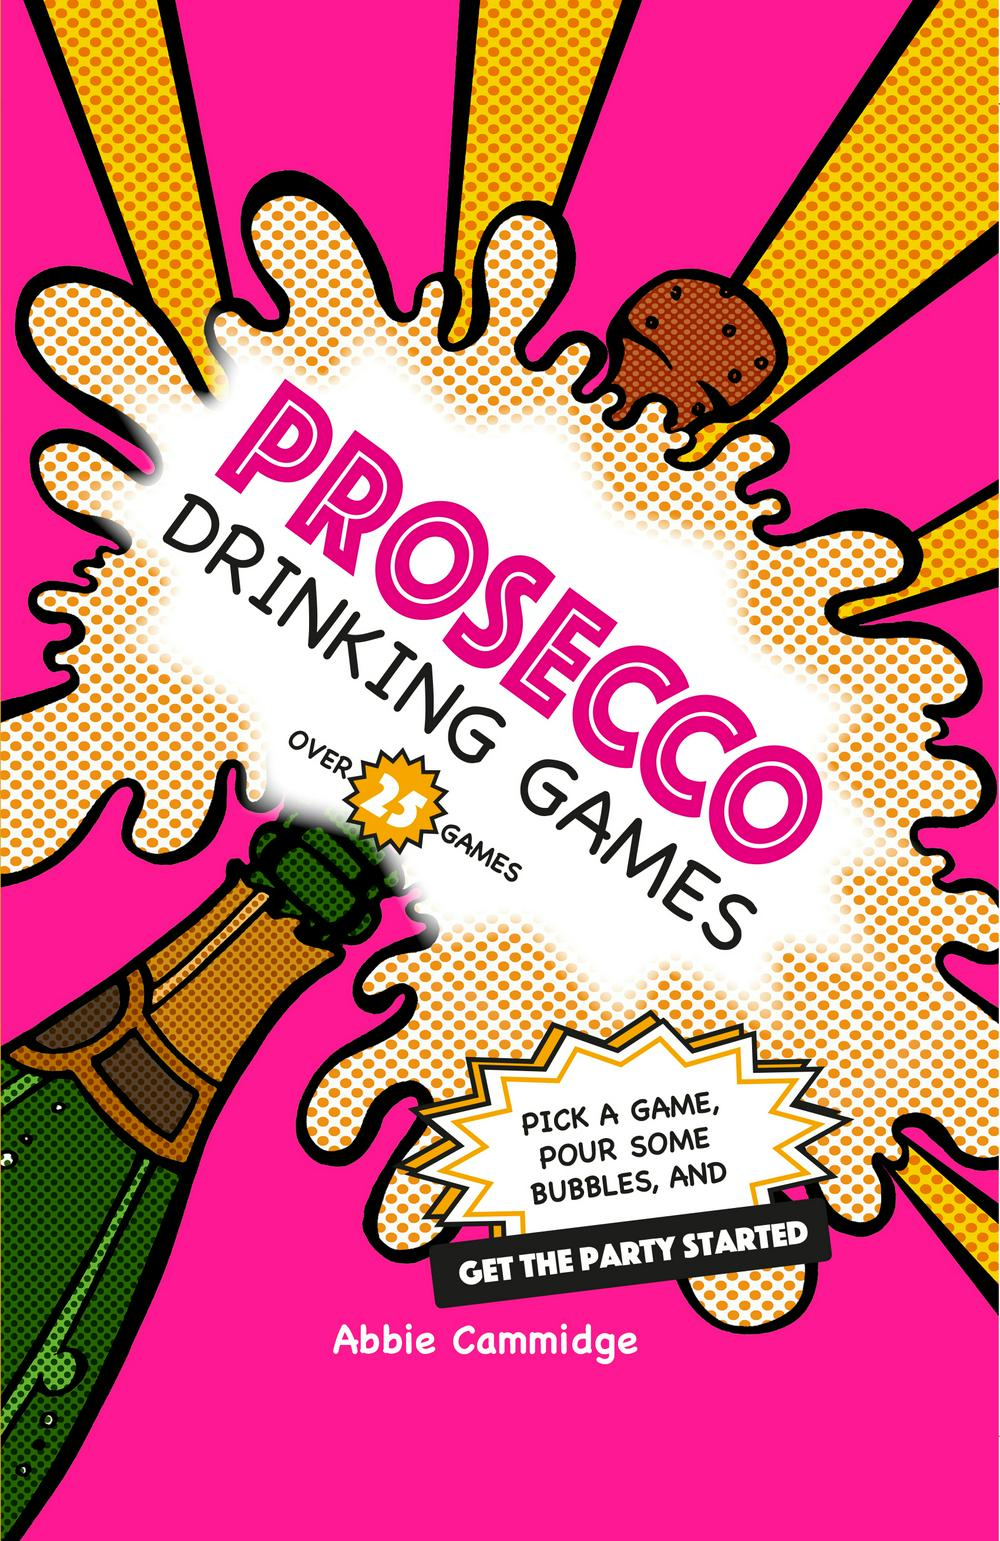 Prosecco Drinking Games by Abbie Cammidge, ISBN: 9781911026426